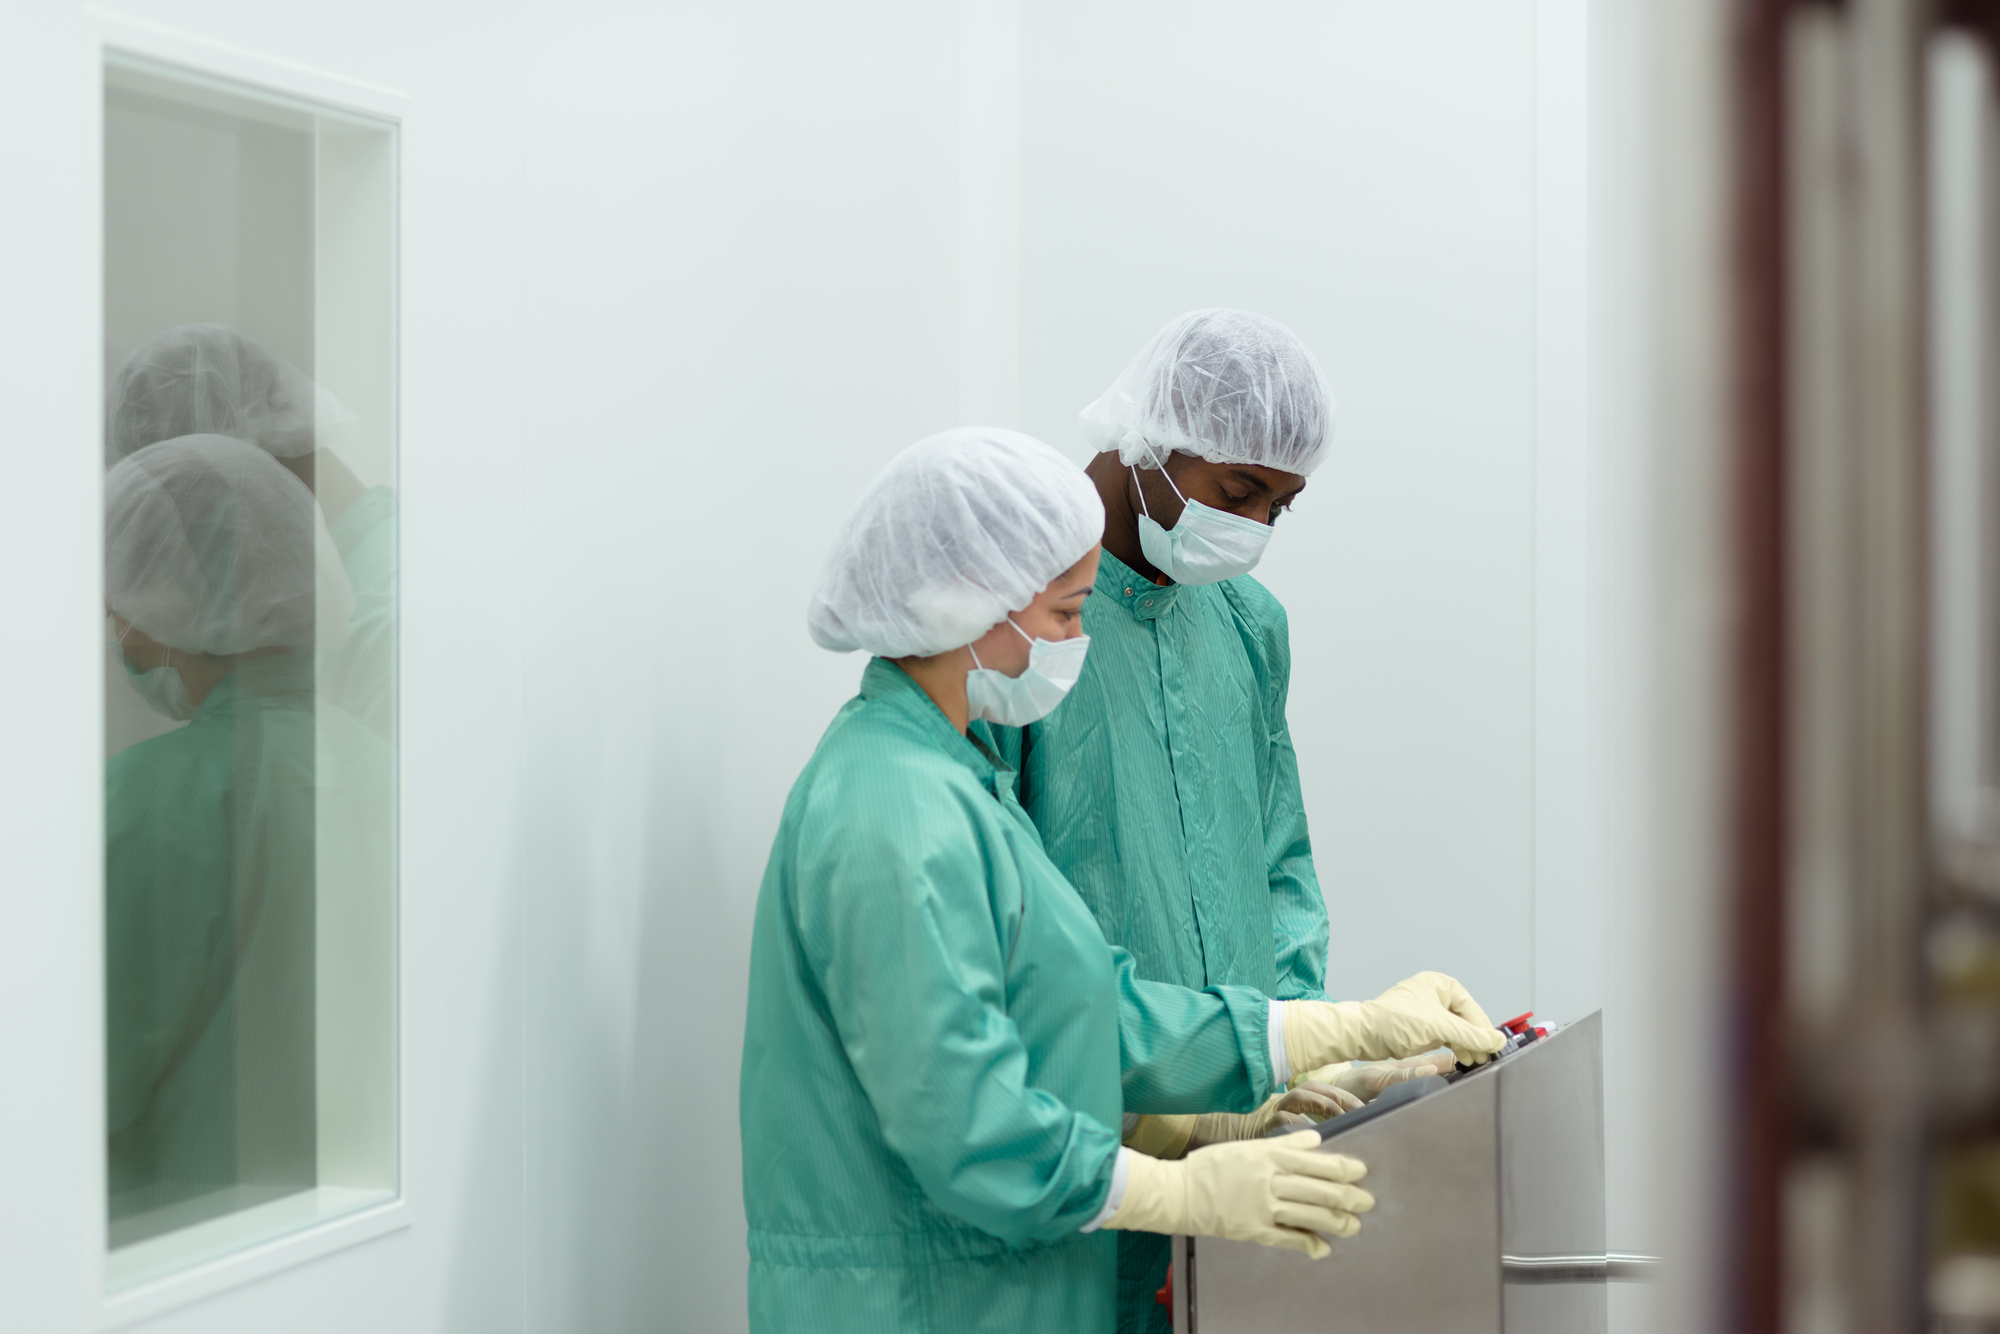 011656965_staff and researchers checking equipment in biotech industry.jpeg